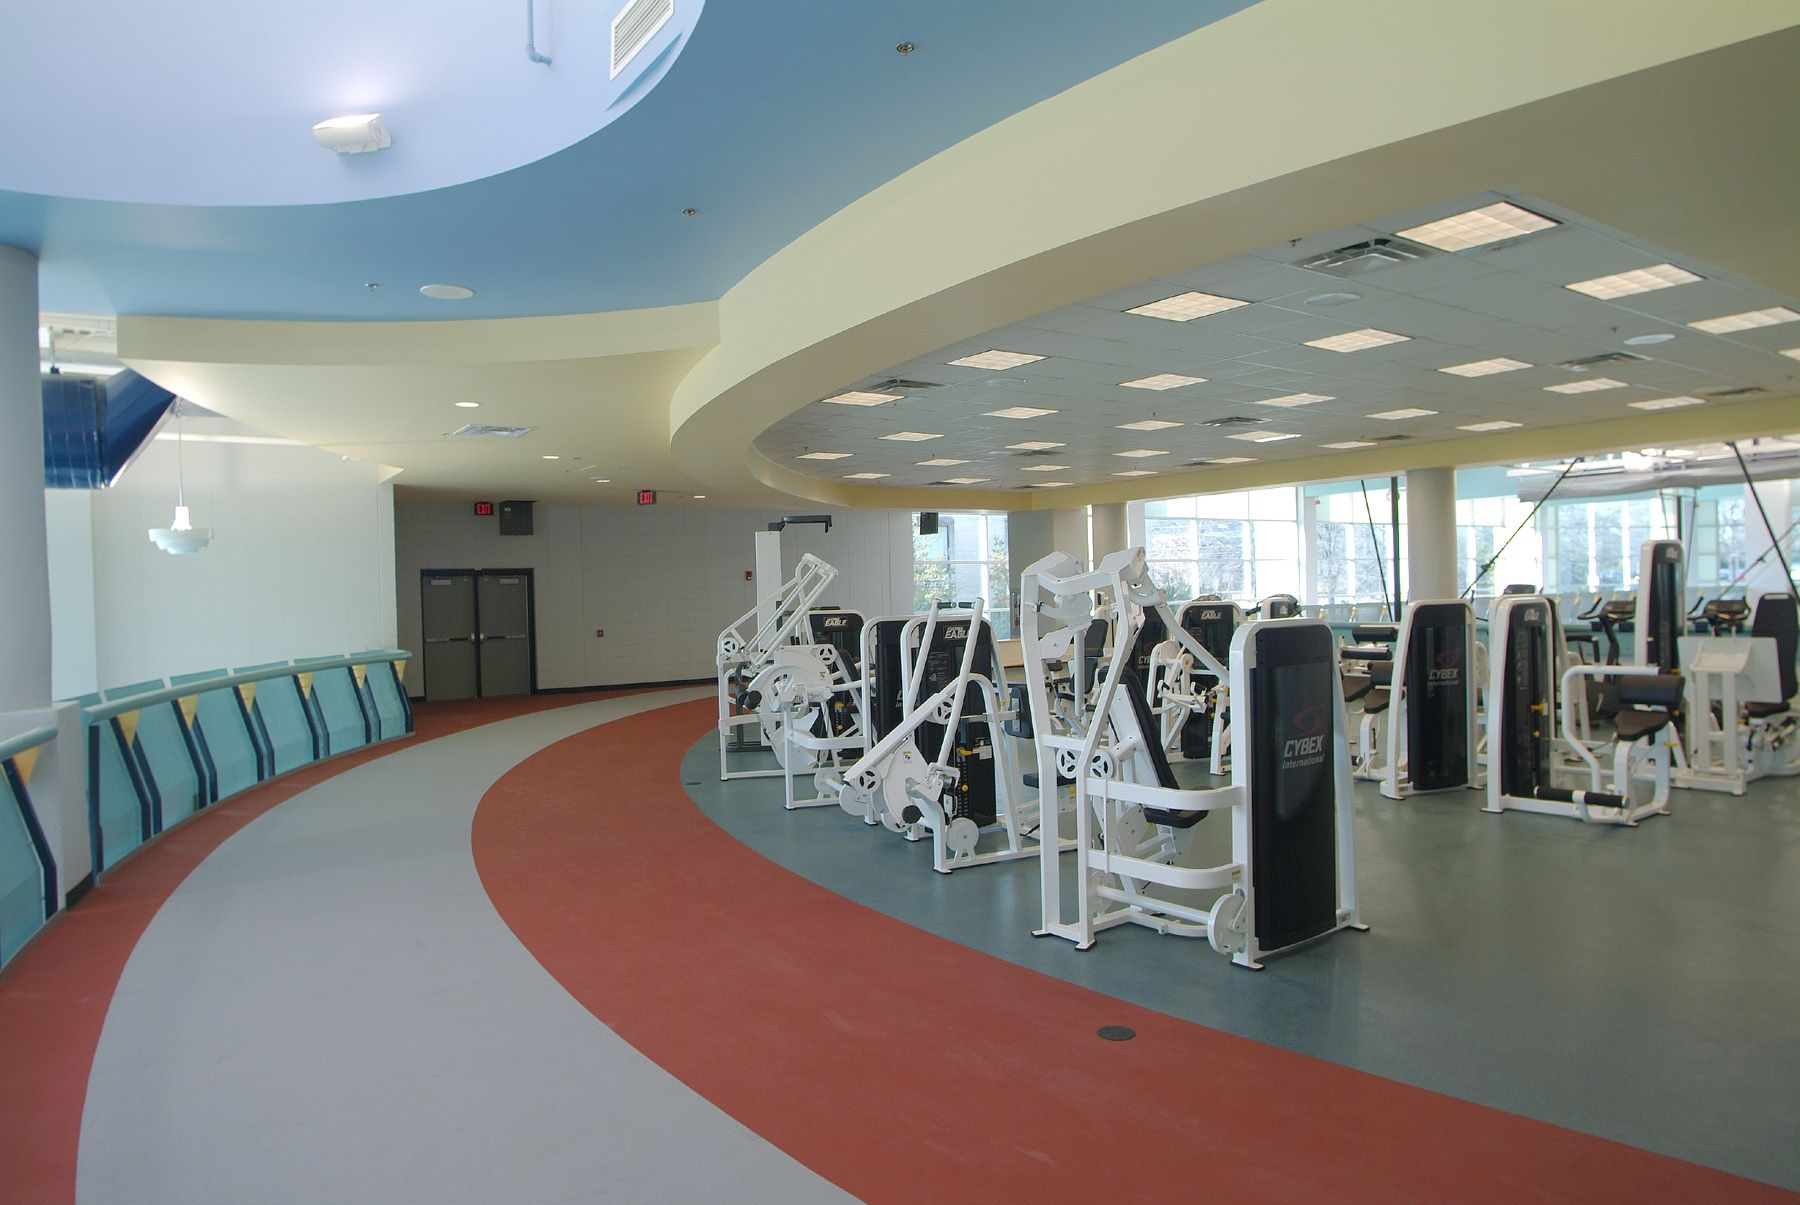 Physical Therapy Room with Machines and Circular Running